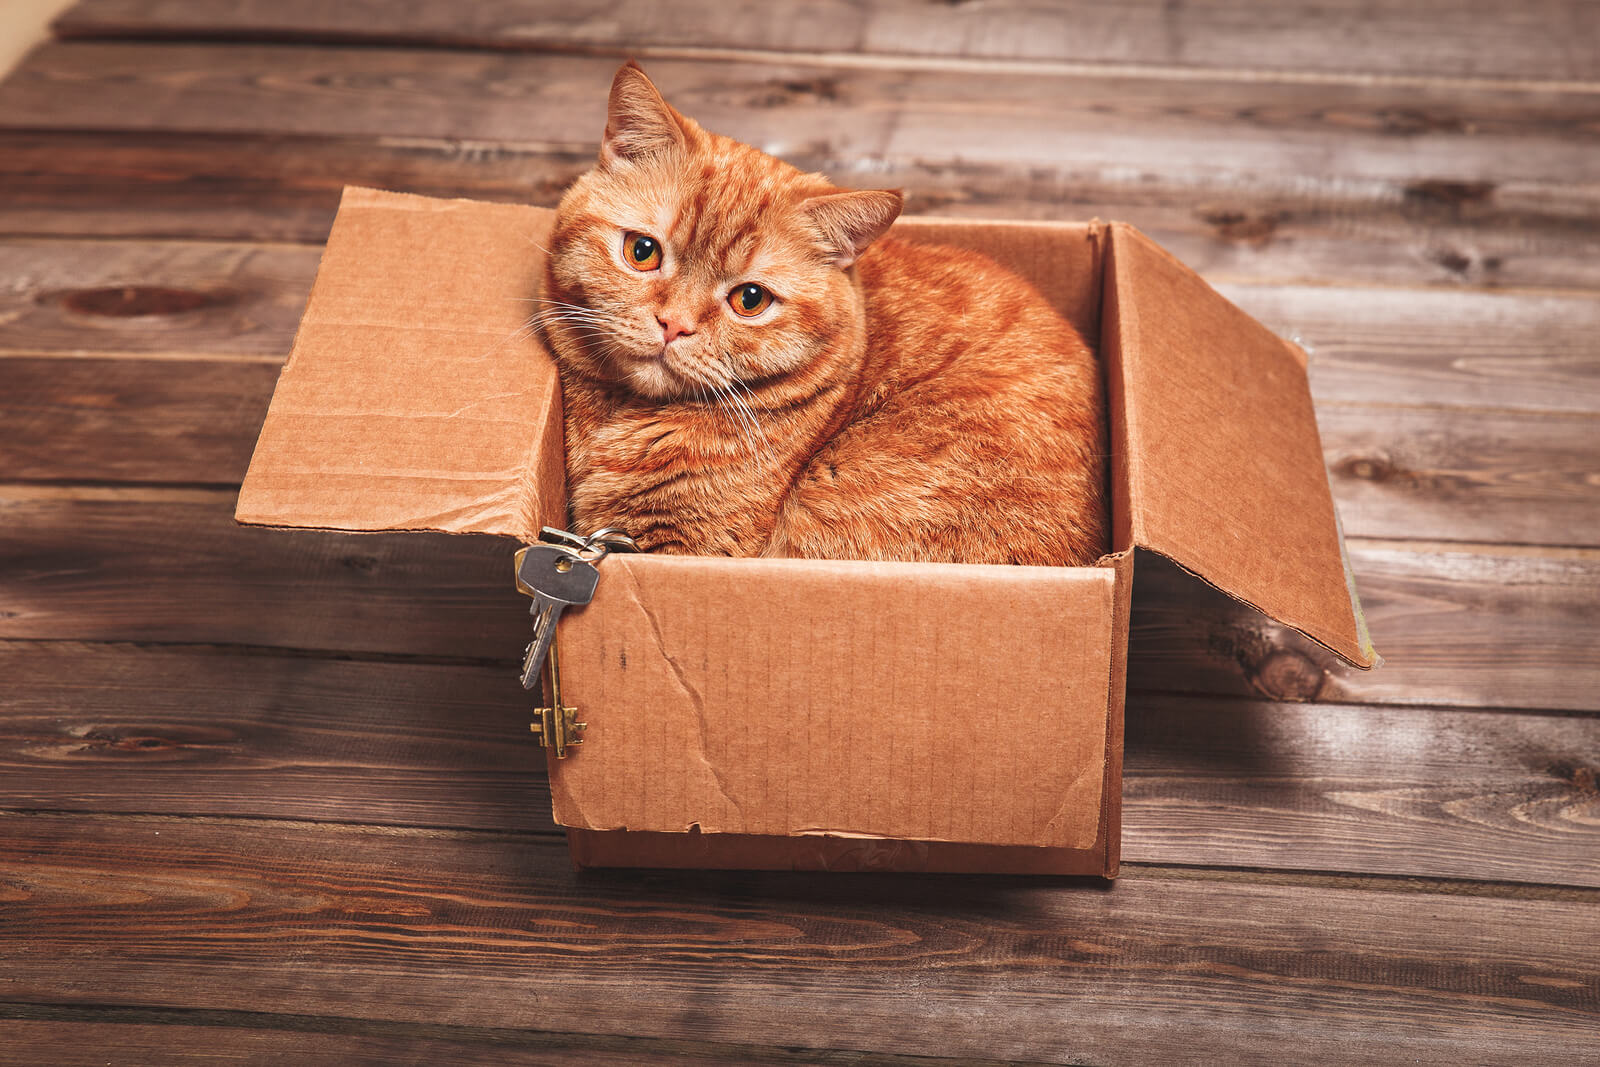 Top Tips For Moving Home With Your Cat